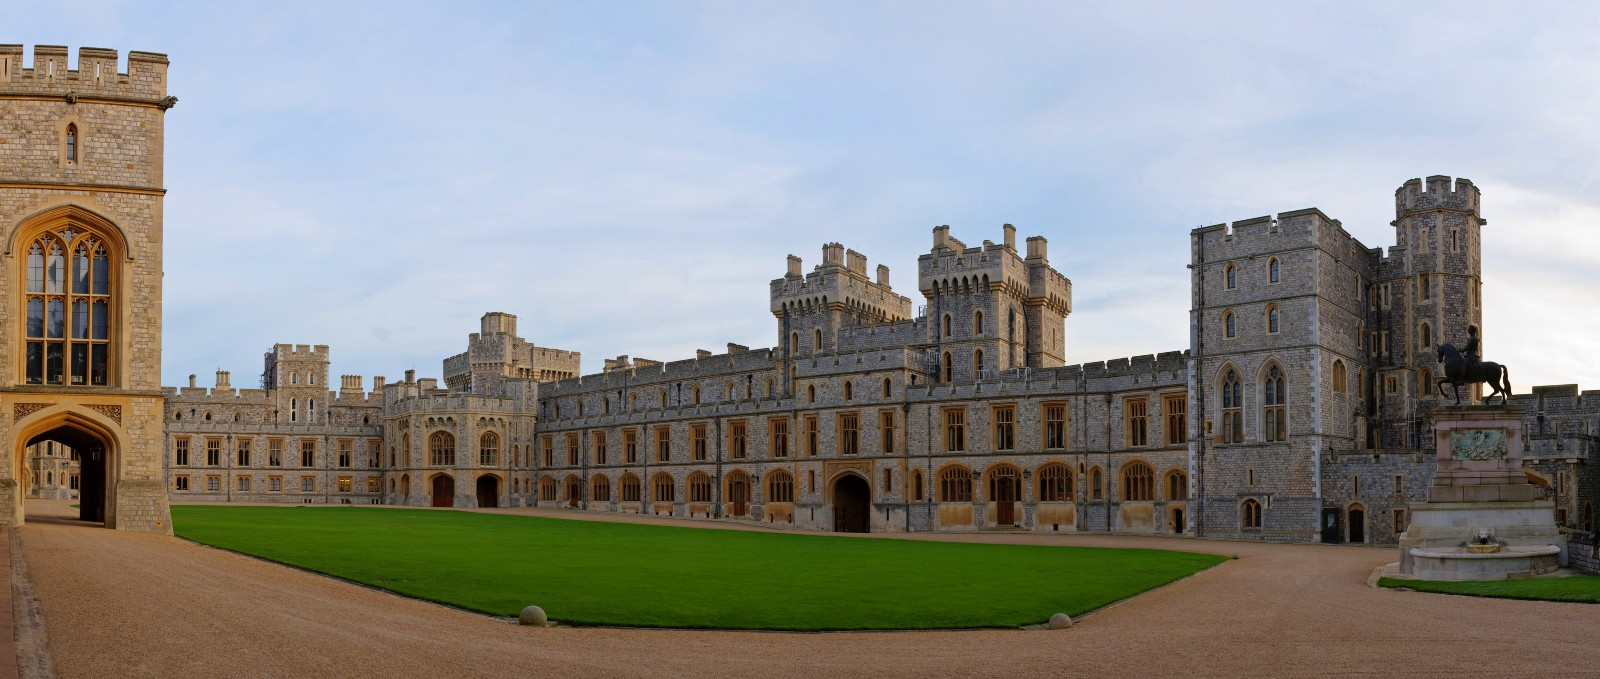 Windsor Castle - the venue for the Royal Wedding